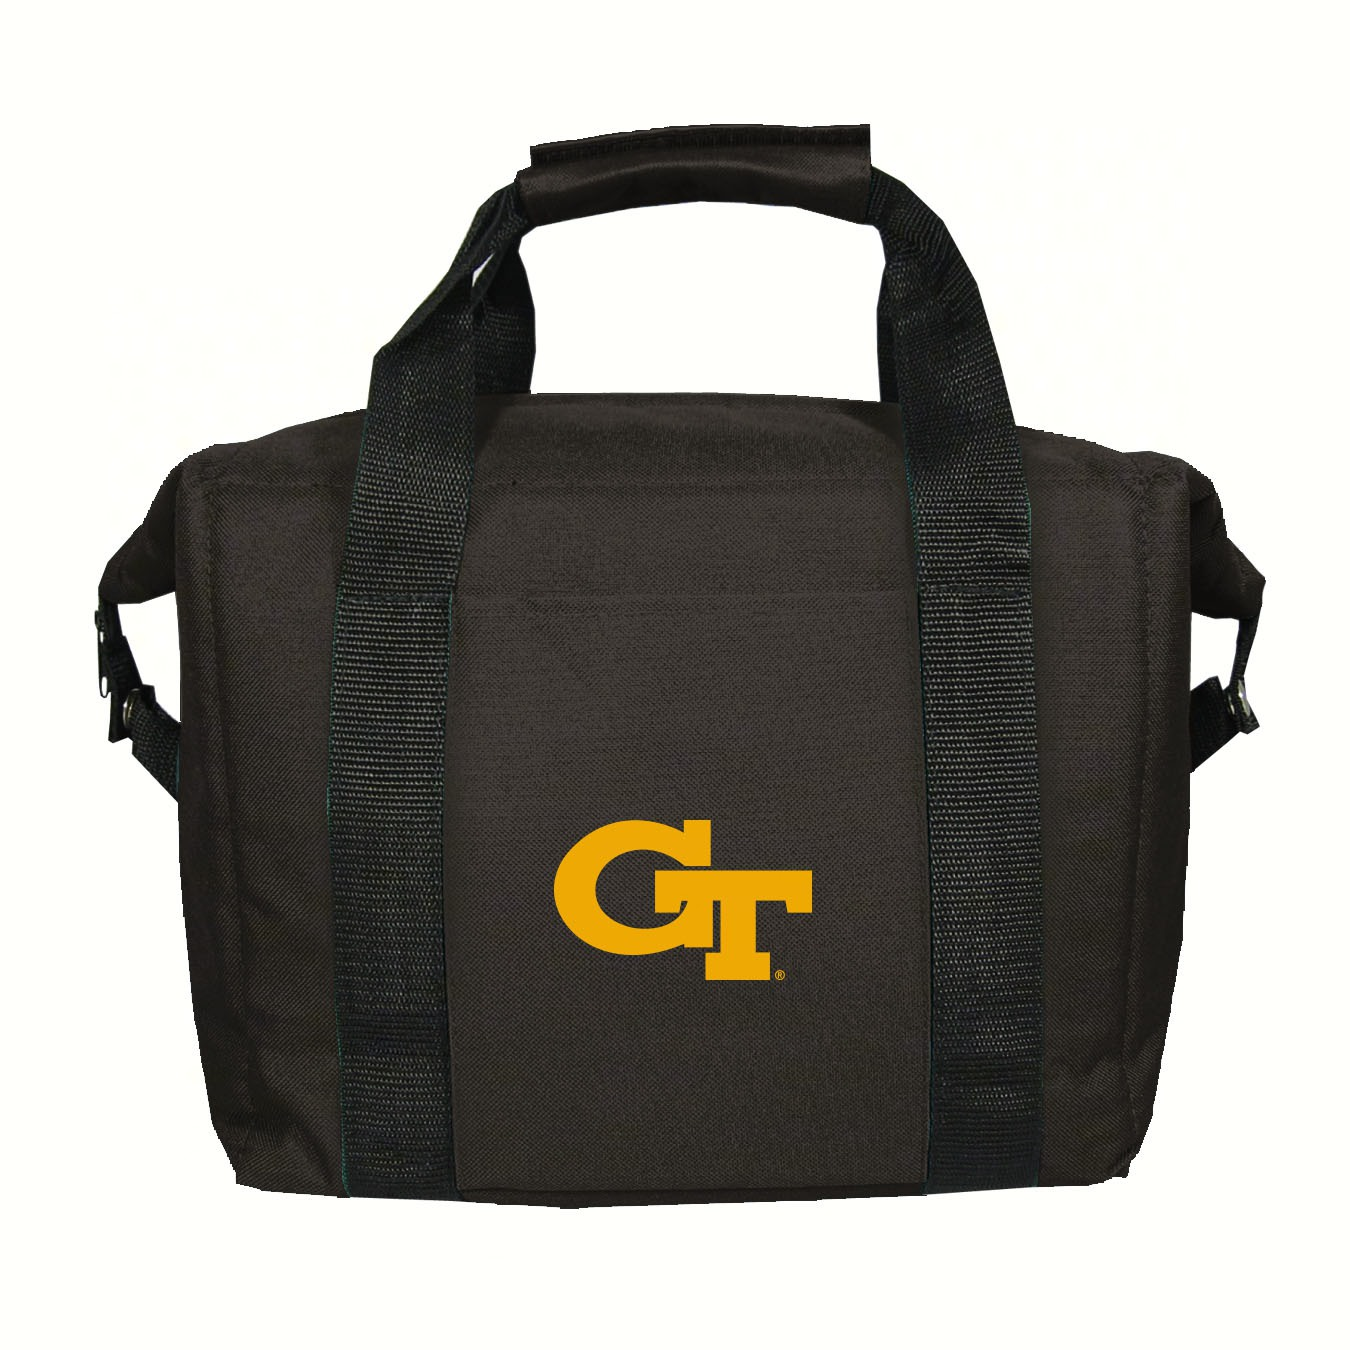 Kooler Bag - Georgia Tech Yellow Jacket (Holds a 12 pack)